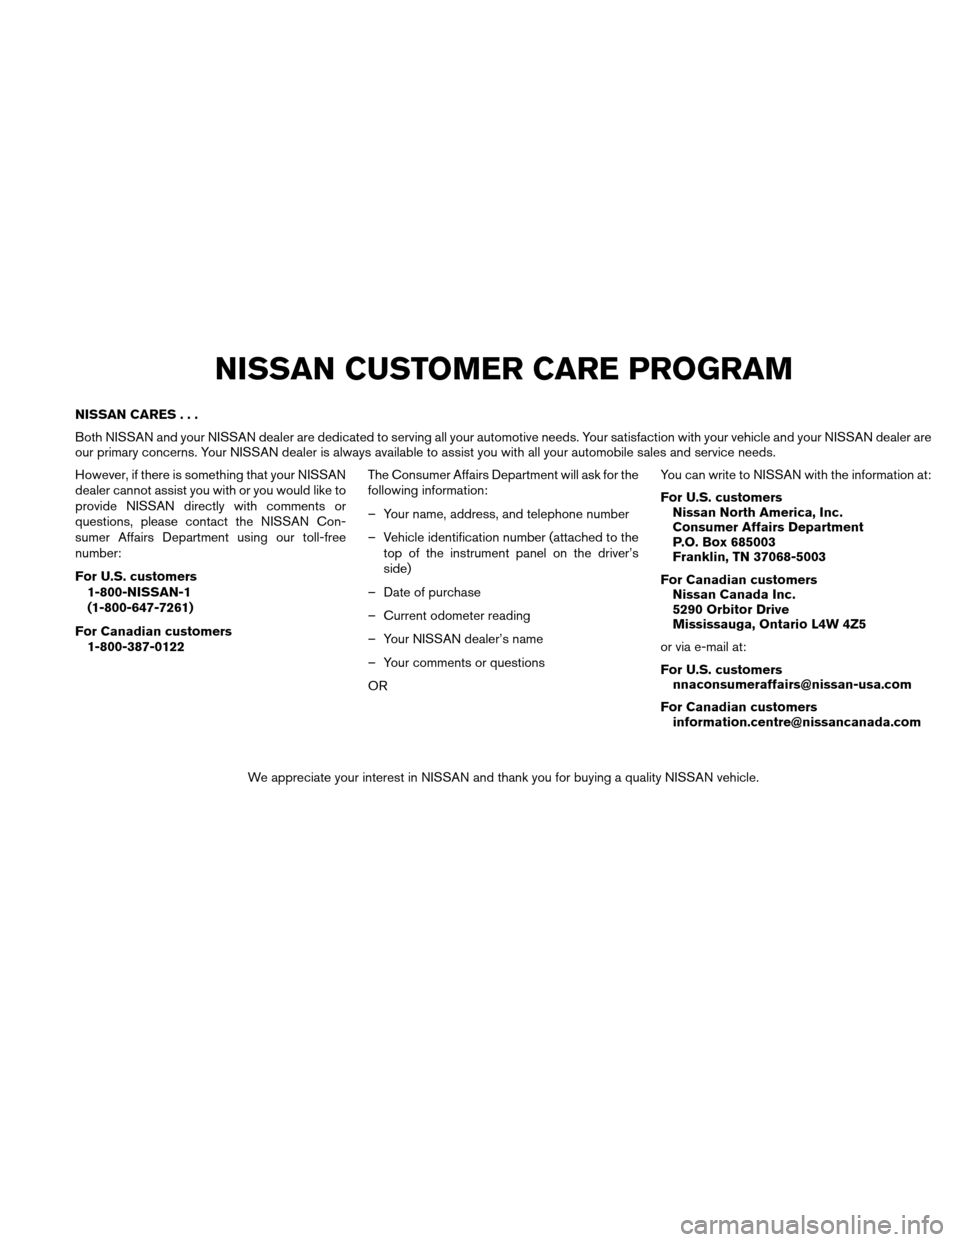 NISSAN ALTIMA COUPE 2011 D32 / 4.G Owners Manual, Page 5